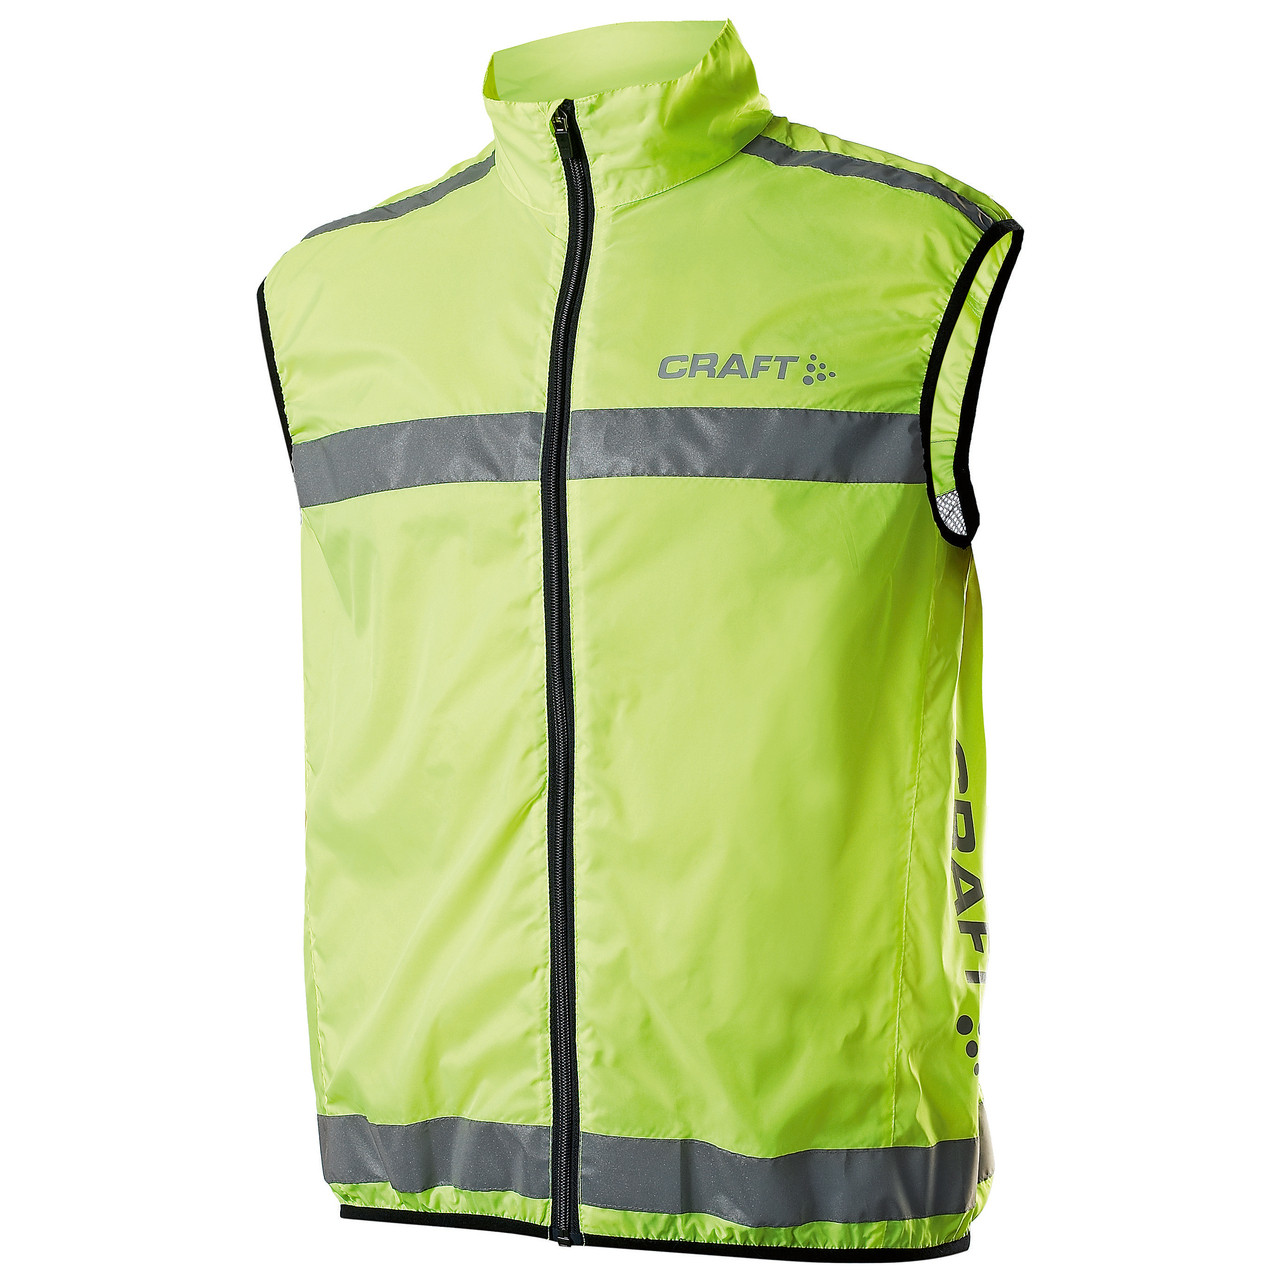 Craft Running Cycling Safety Gilet - BigWight 4637a8c7c